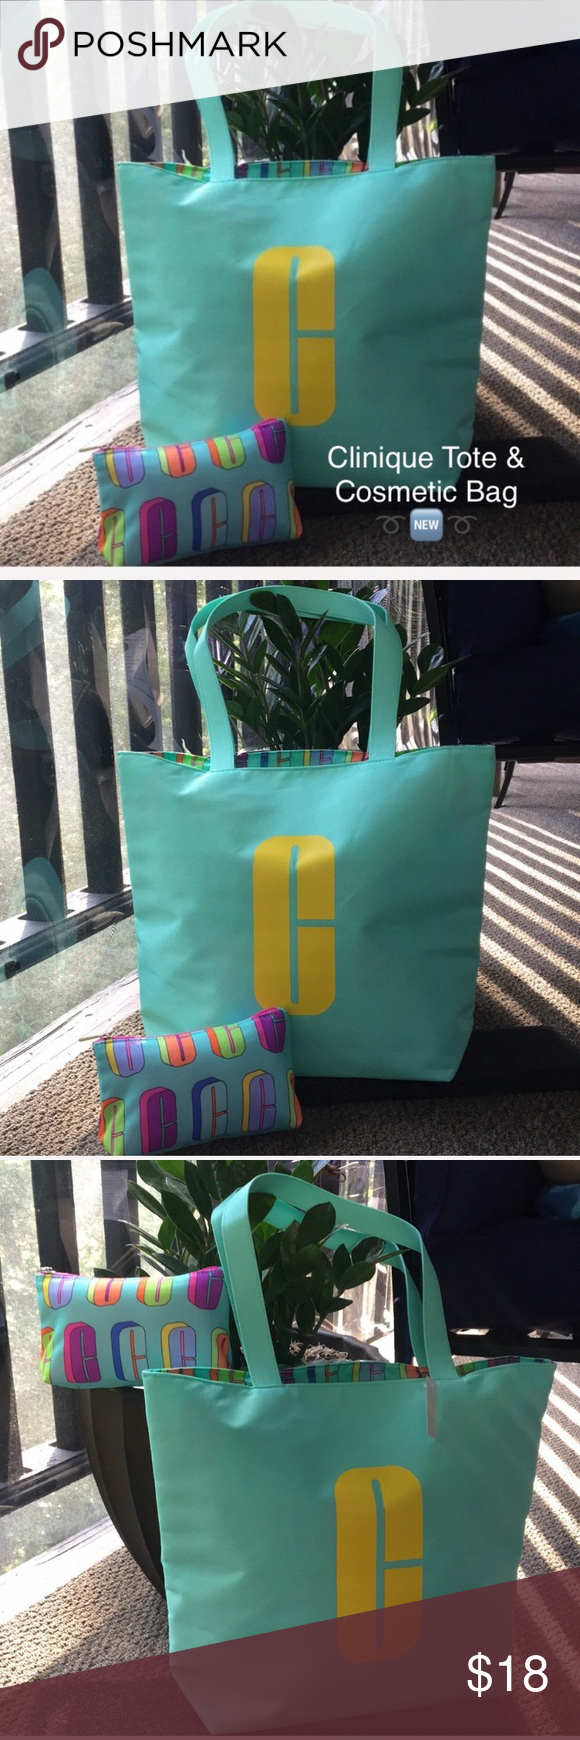 Clinique Tote & Cosmetics Bag Set NWT Bright and cheery